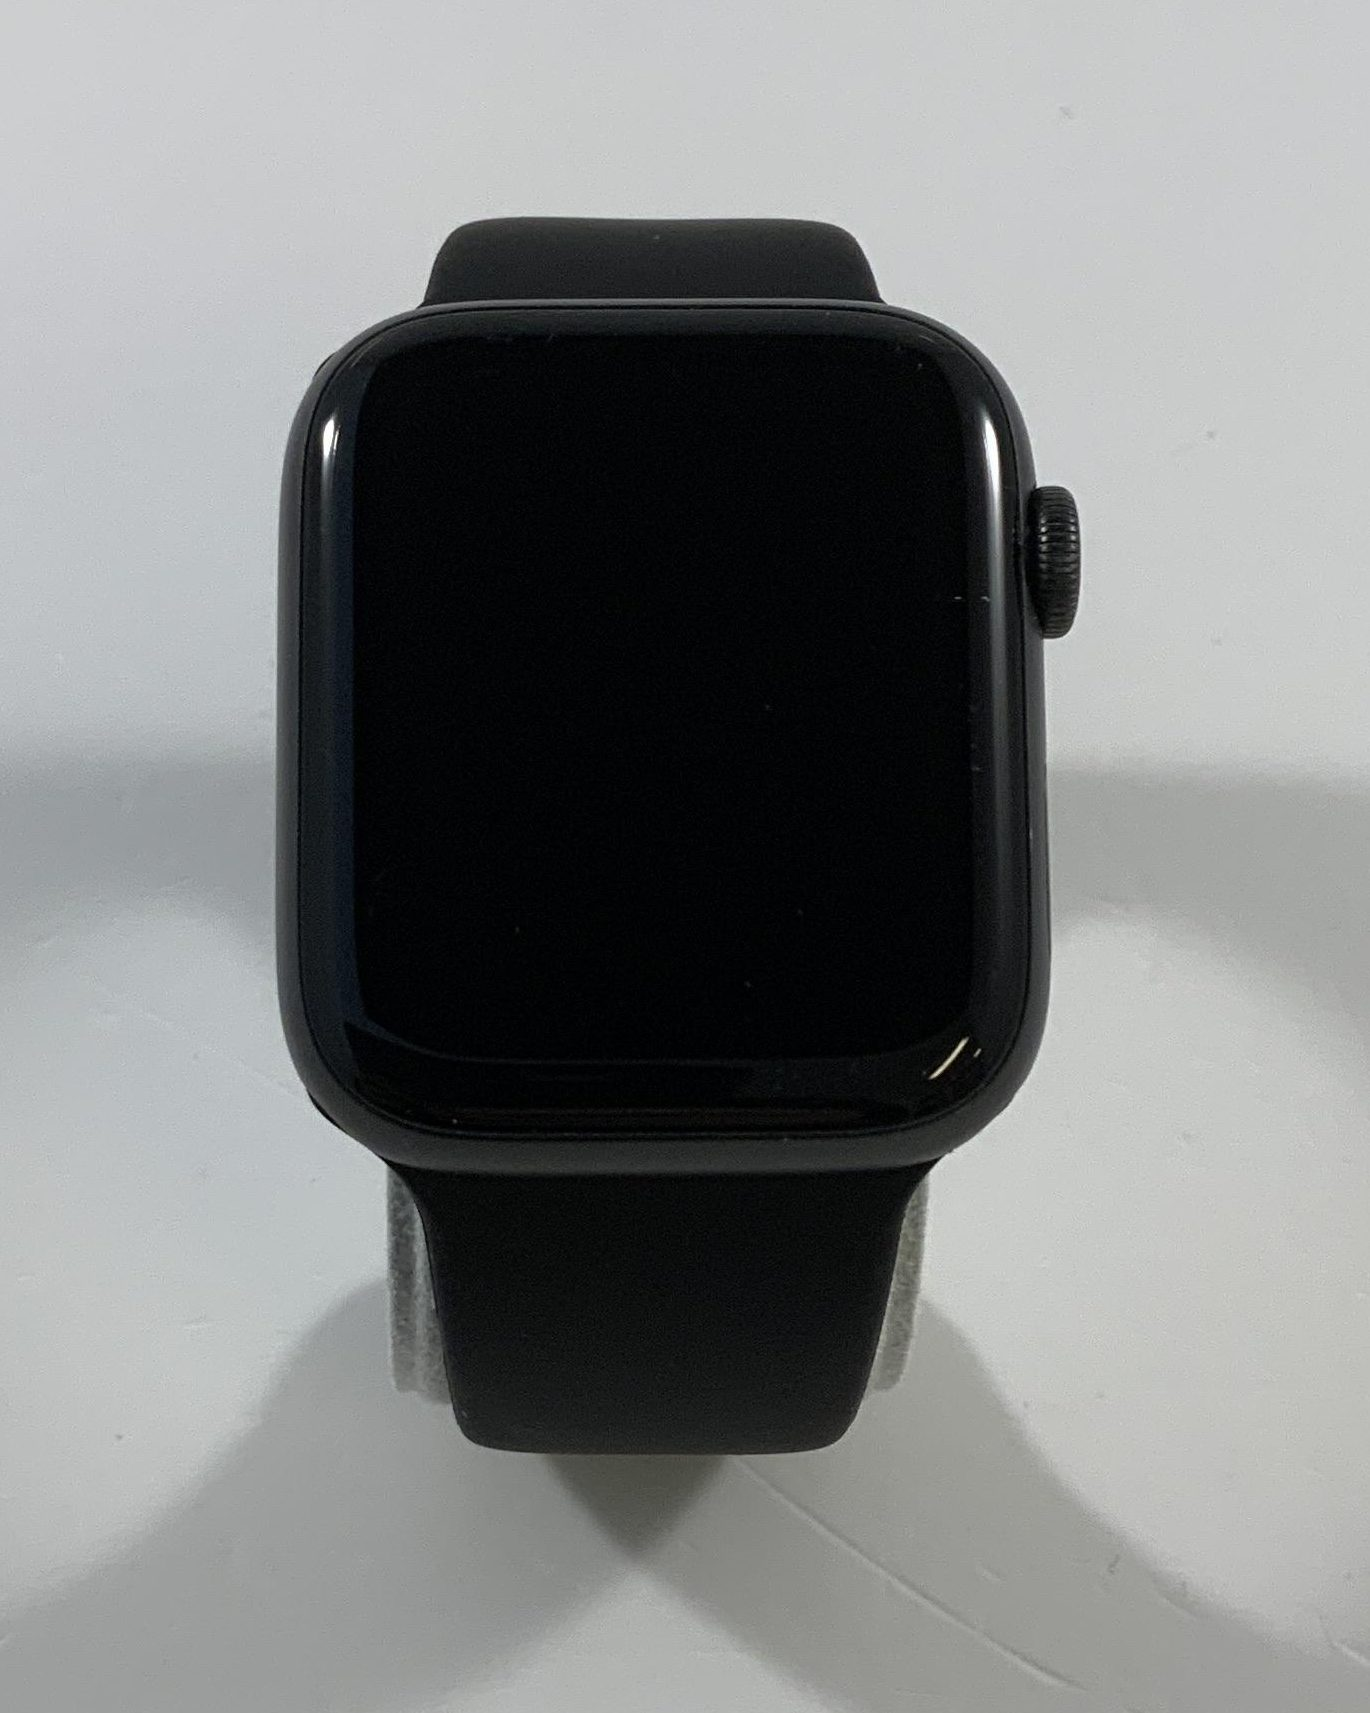 Watch Series 6 Aluminum Cellular (44mm), Space Gray, image 1